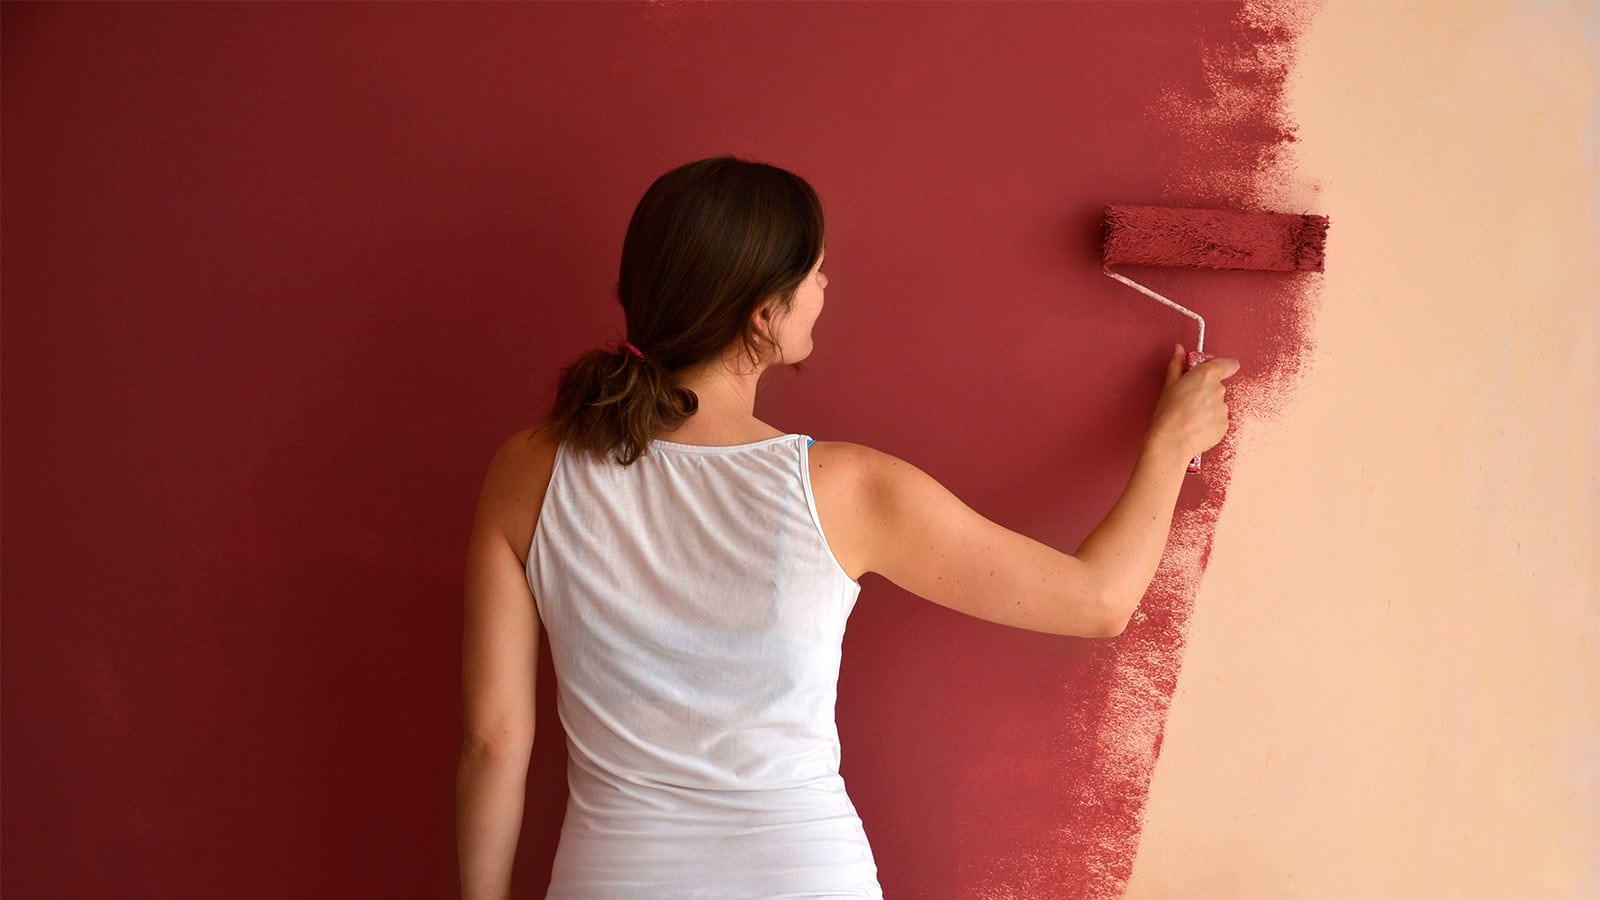 Painting red